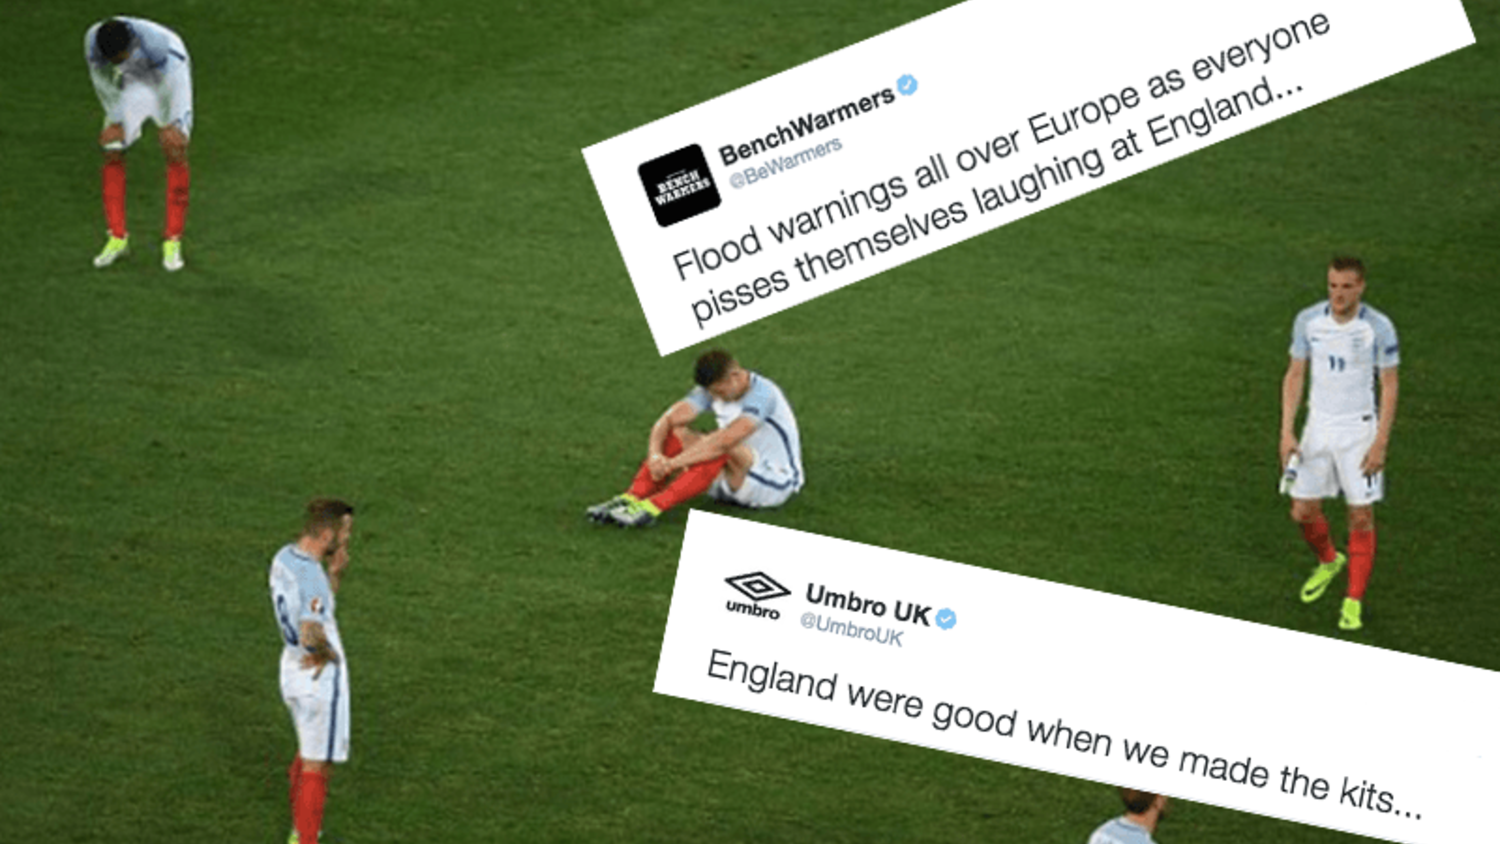 How the internet reacted to England losing to Iceland and exiting Euro 2016